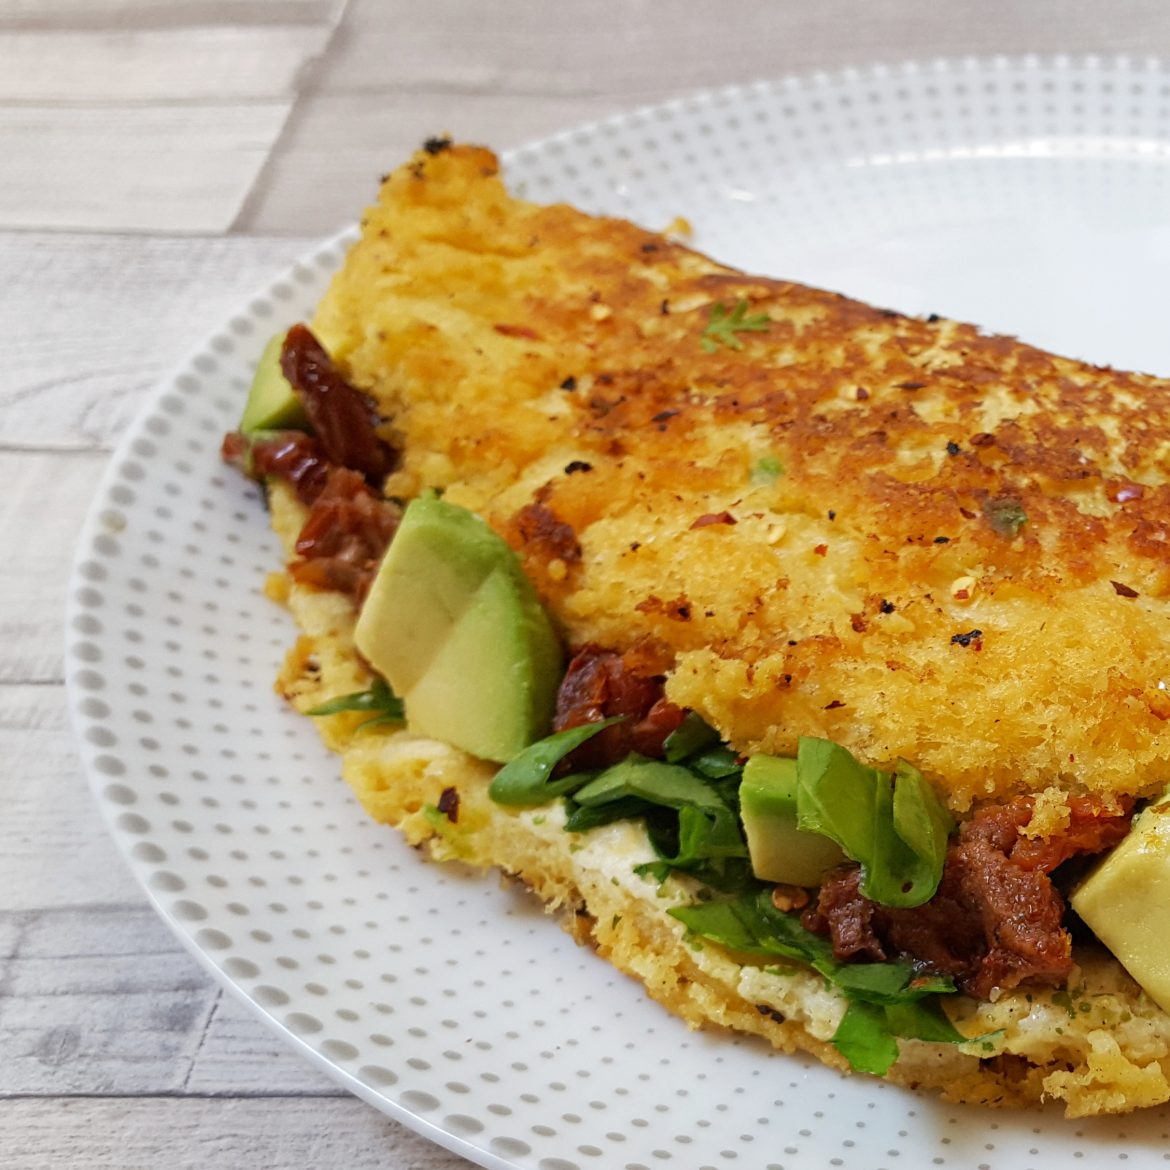 Eggless Omelette with Avocado, Spinach & Sundried Tomatoes